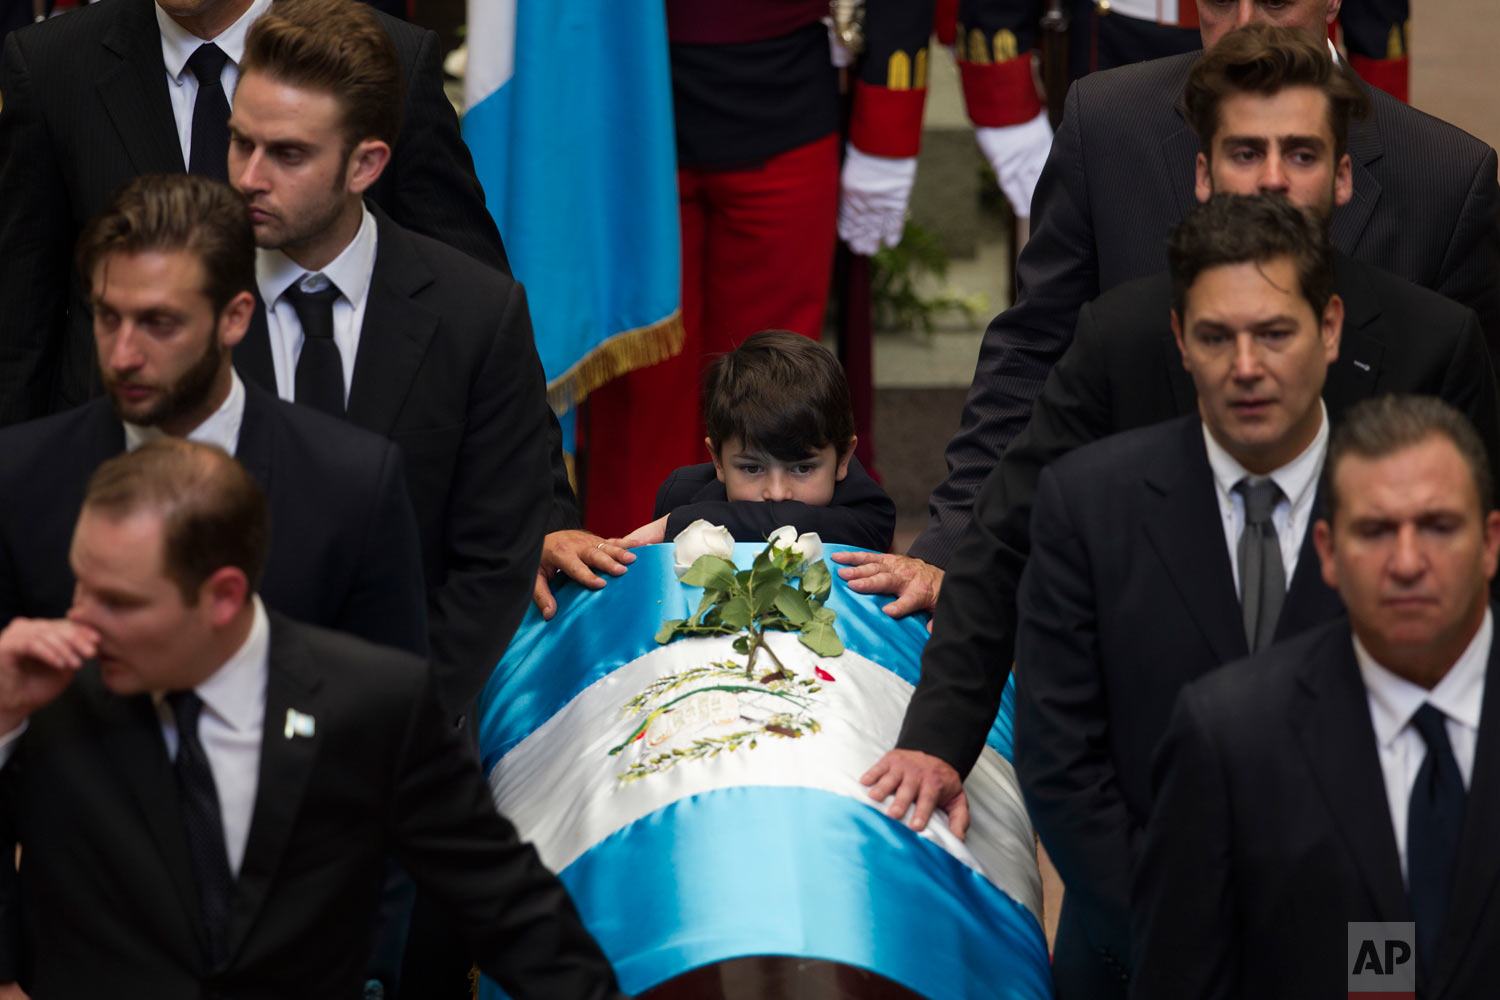 In this April 28, 2018 photo, the coffin of Guatemala's former president and current mayor, Alvaro Arzu, who signed Guatemala's post-civil war peace agreement in 1996, is escorted by relatives at the National Palace in Guatemala City. Arzu died of a heart attack. (AP Photo/Moises Castillo)